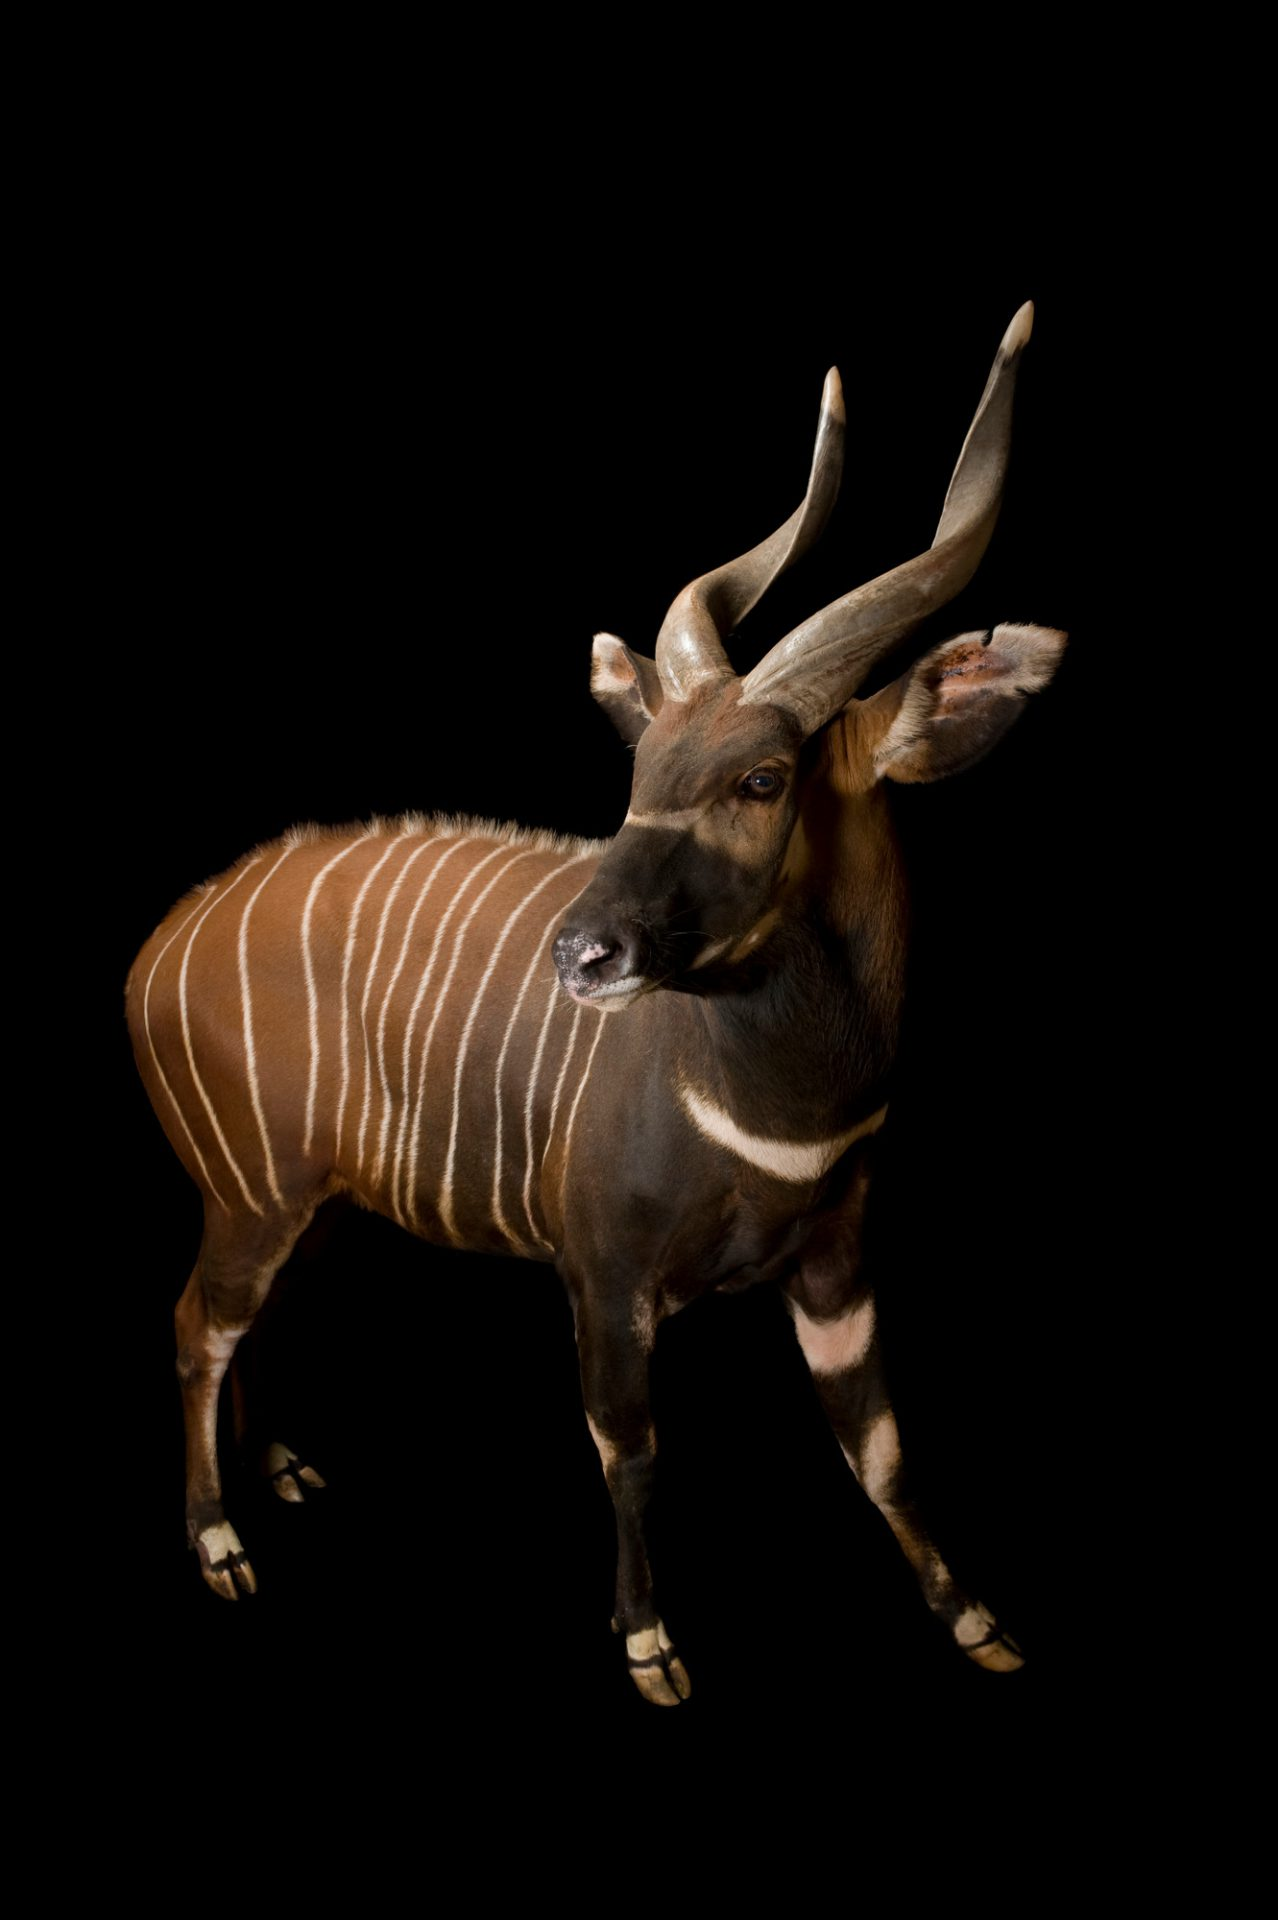 A male eastern bongo (Tragelaphus eurycerus isaaci) at the Great Plains Zoo.